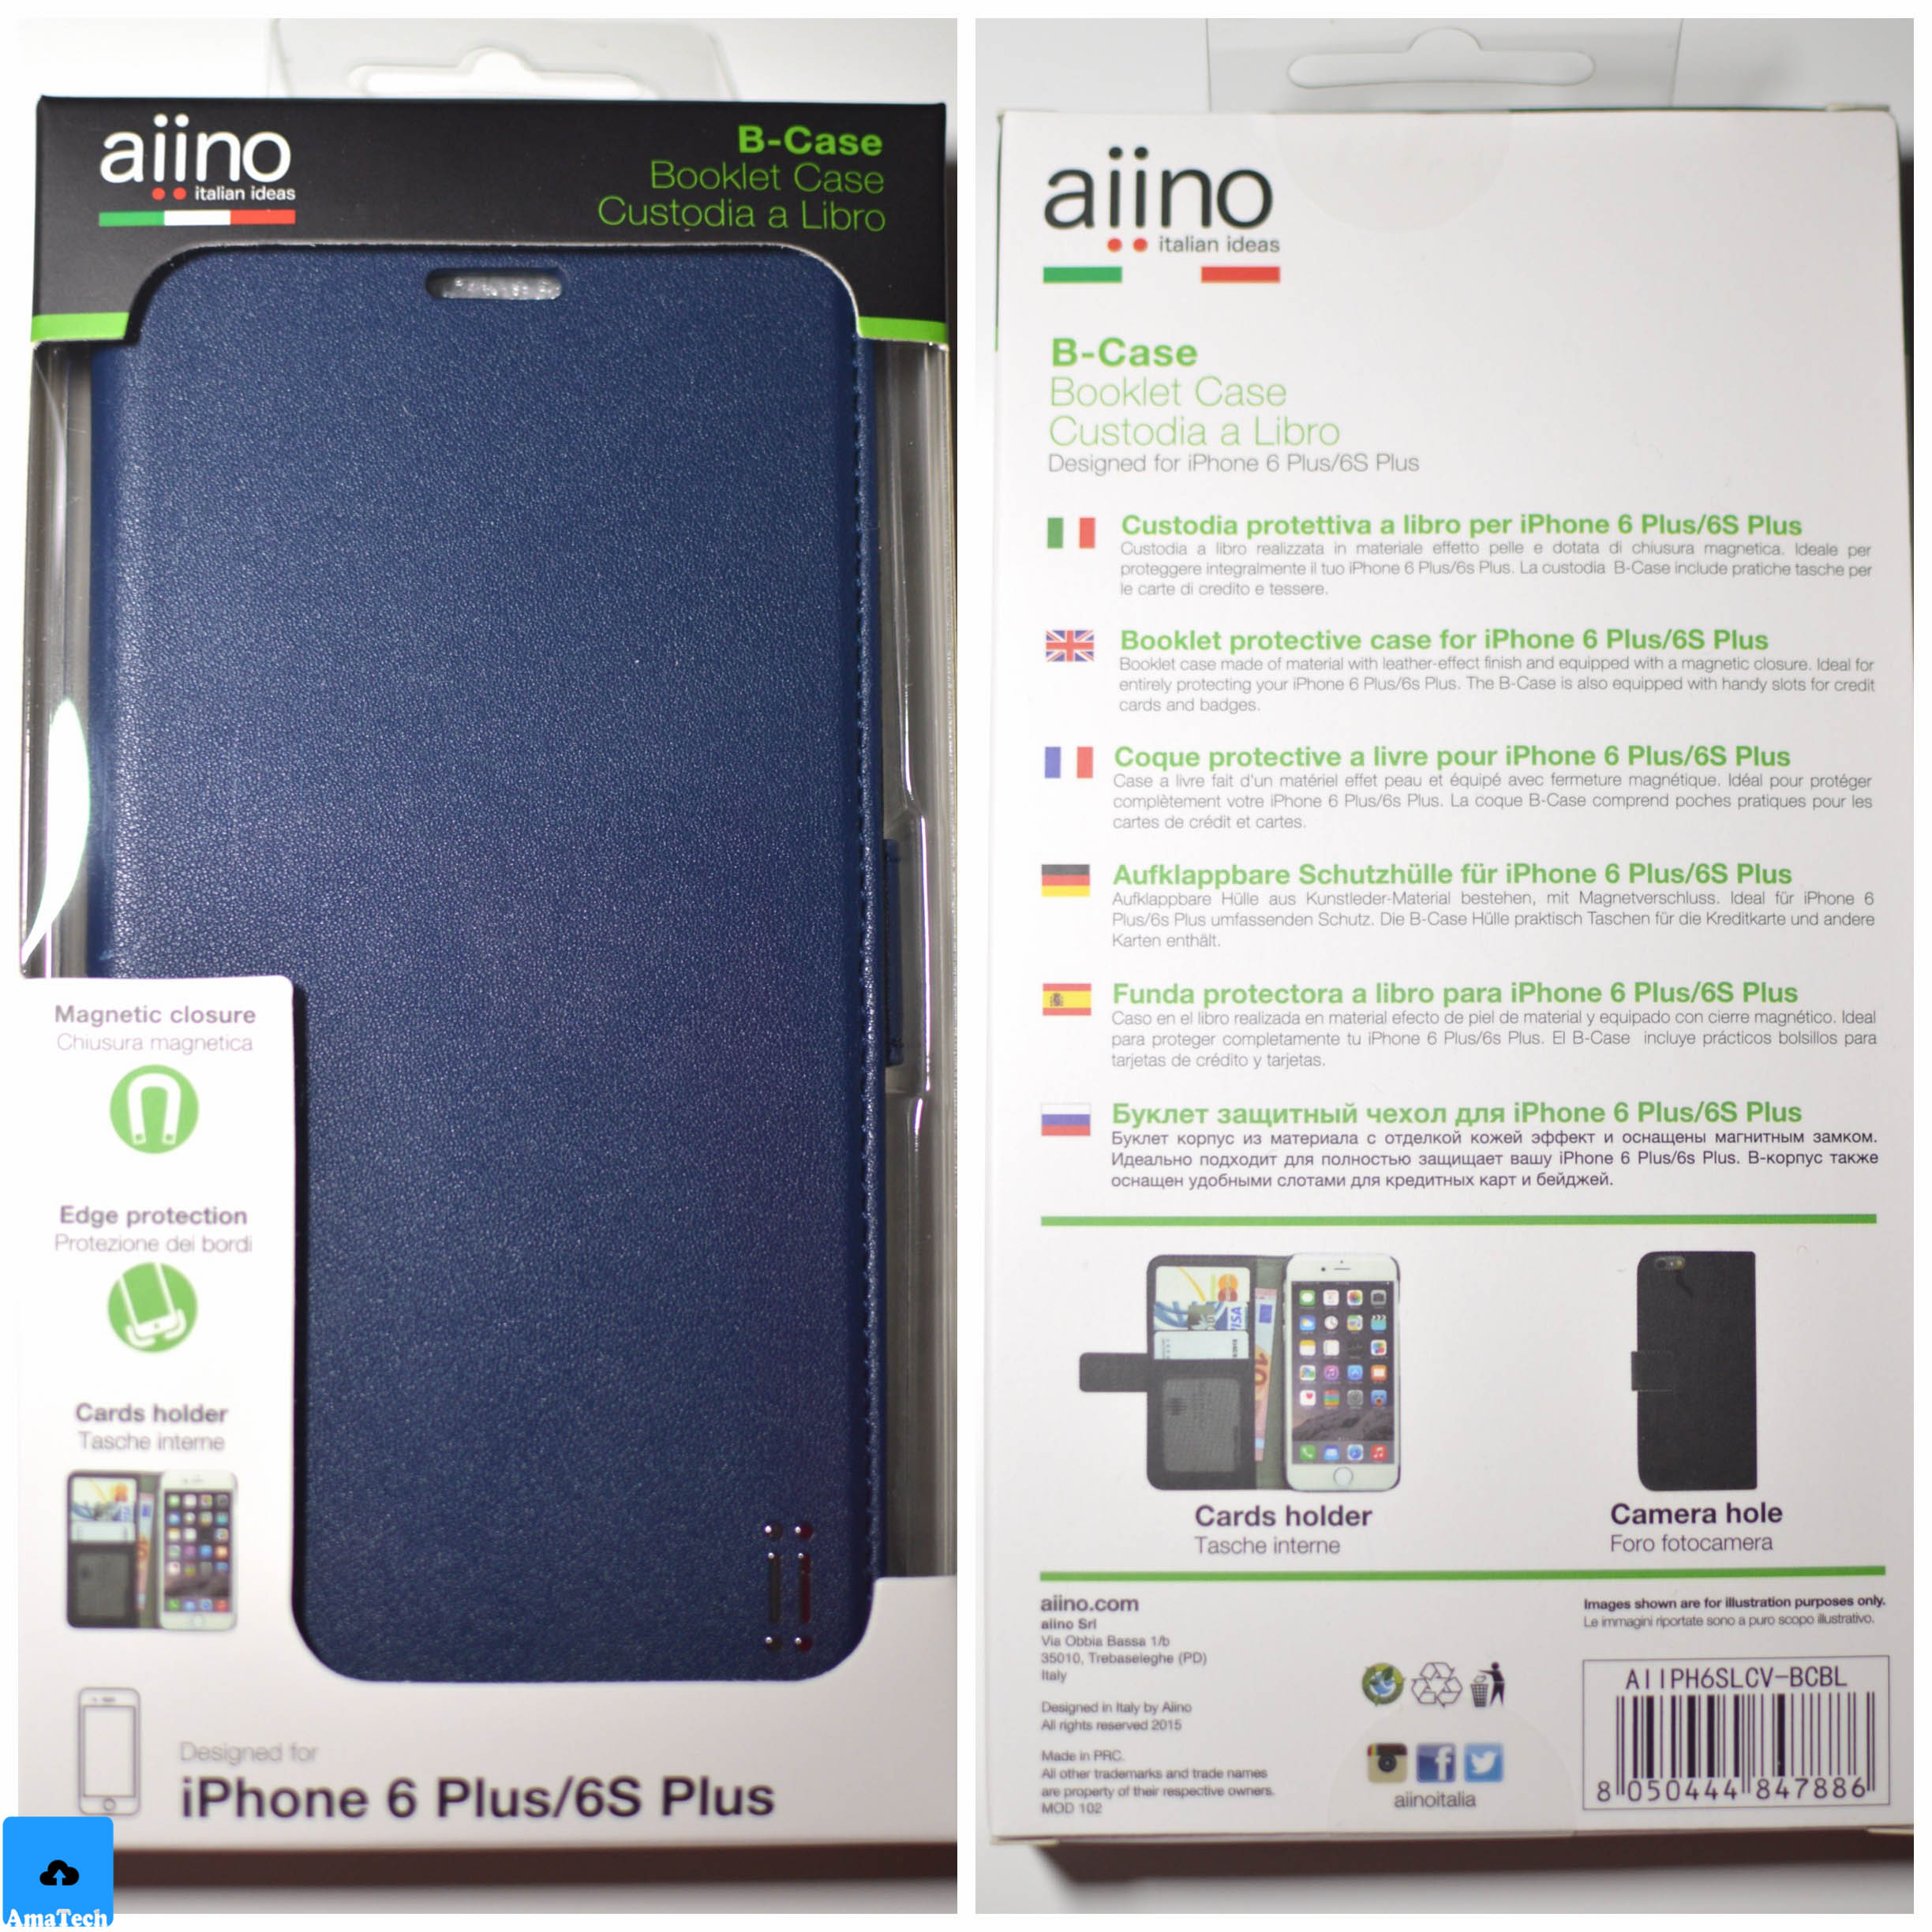 aiino custodia iphone 6 libro